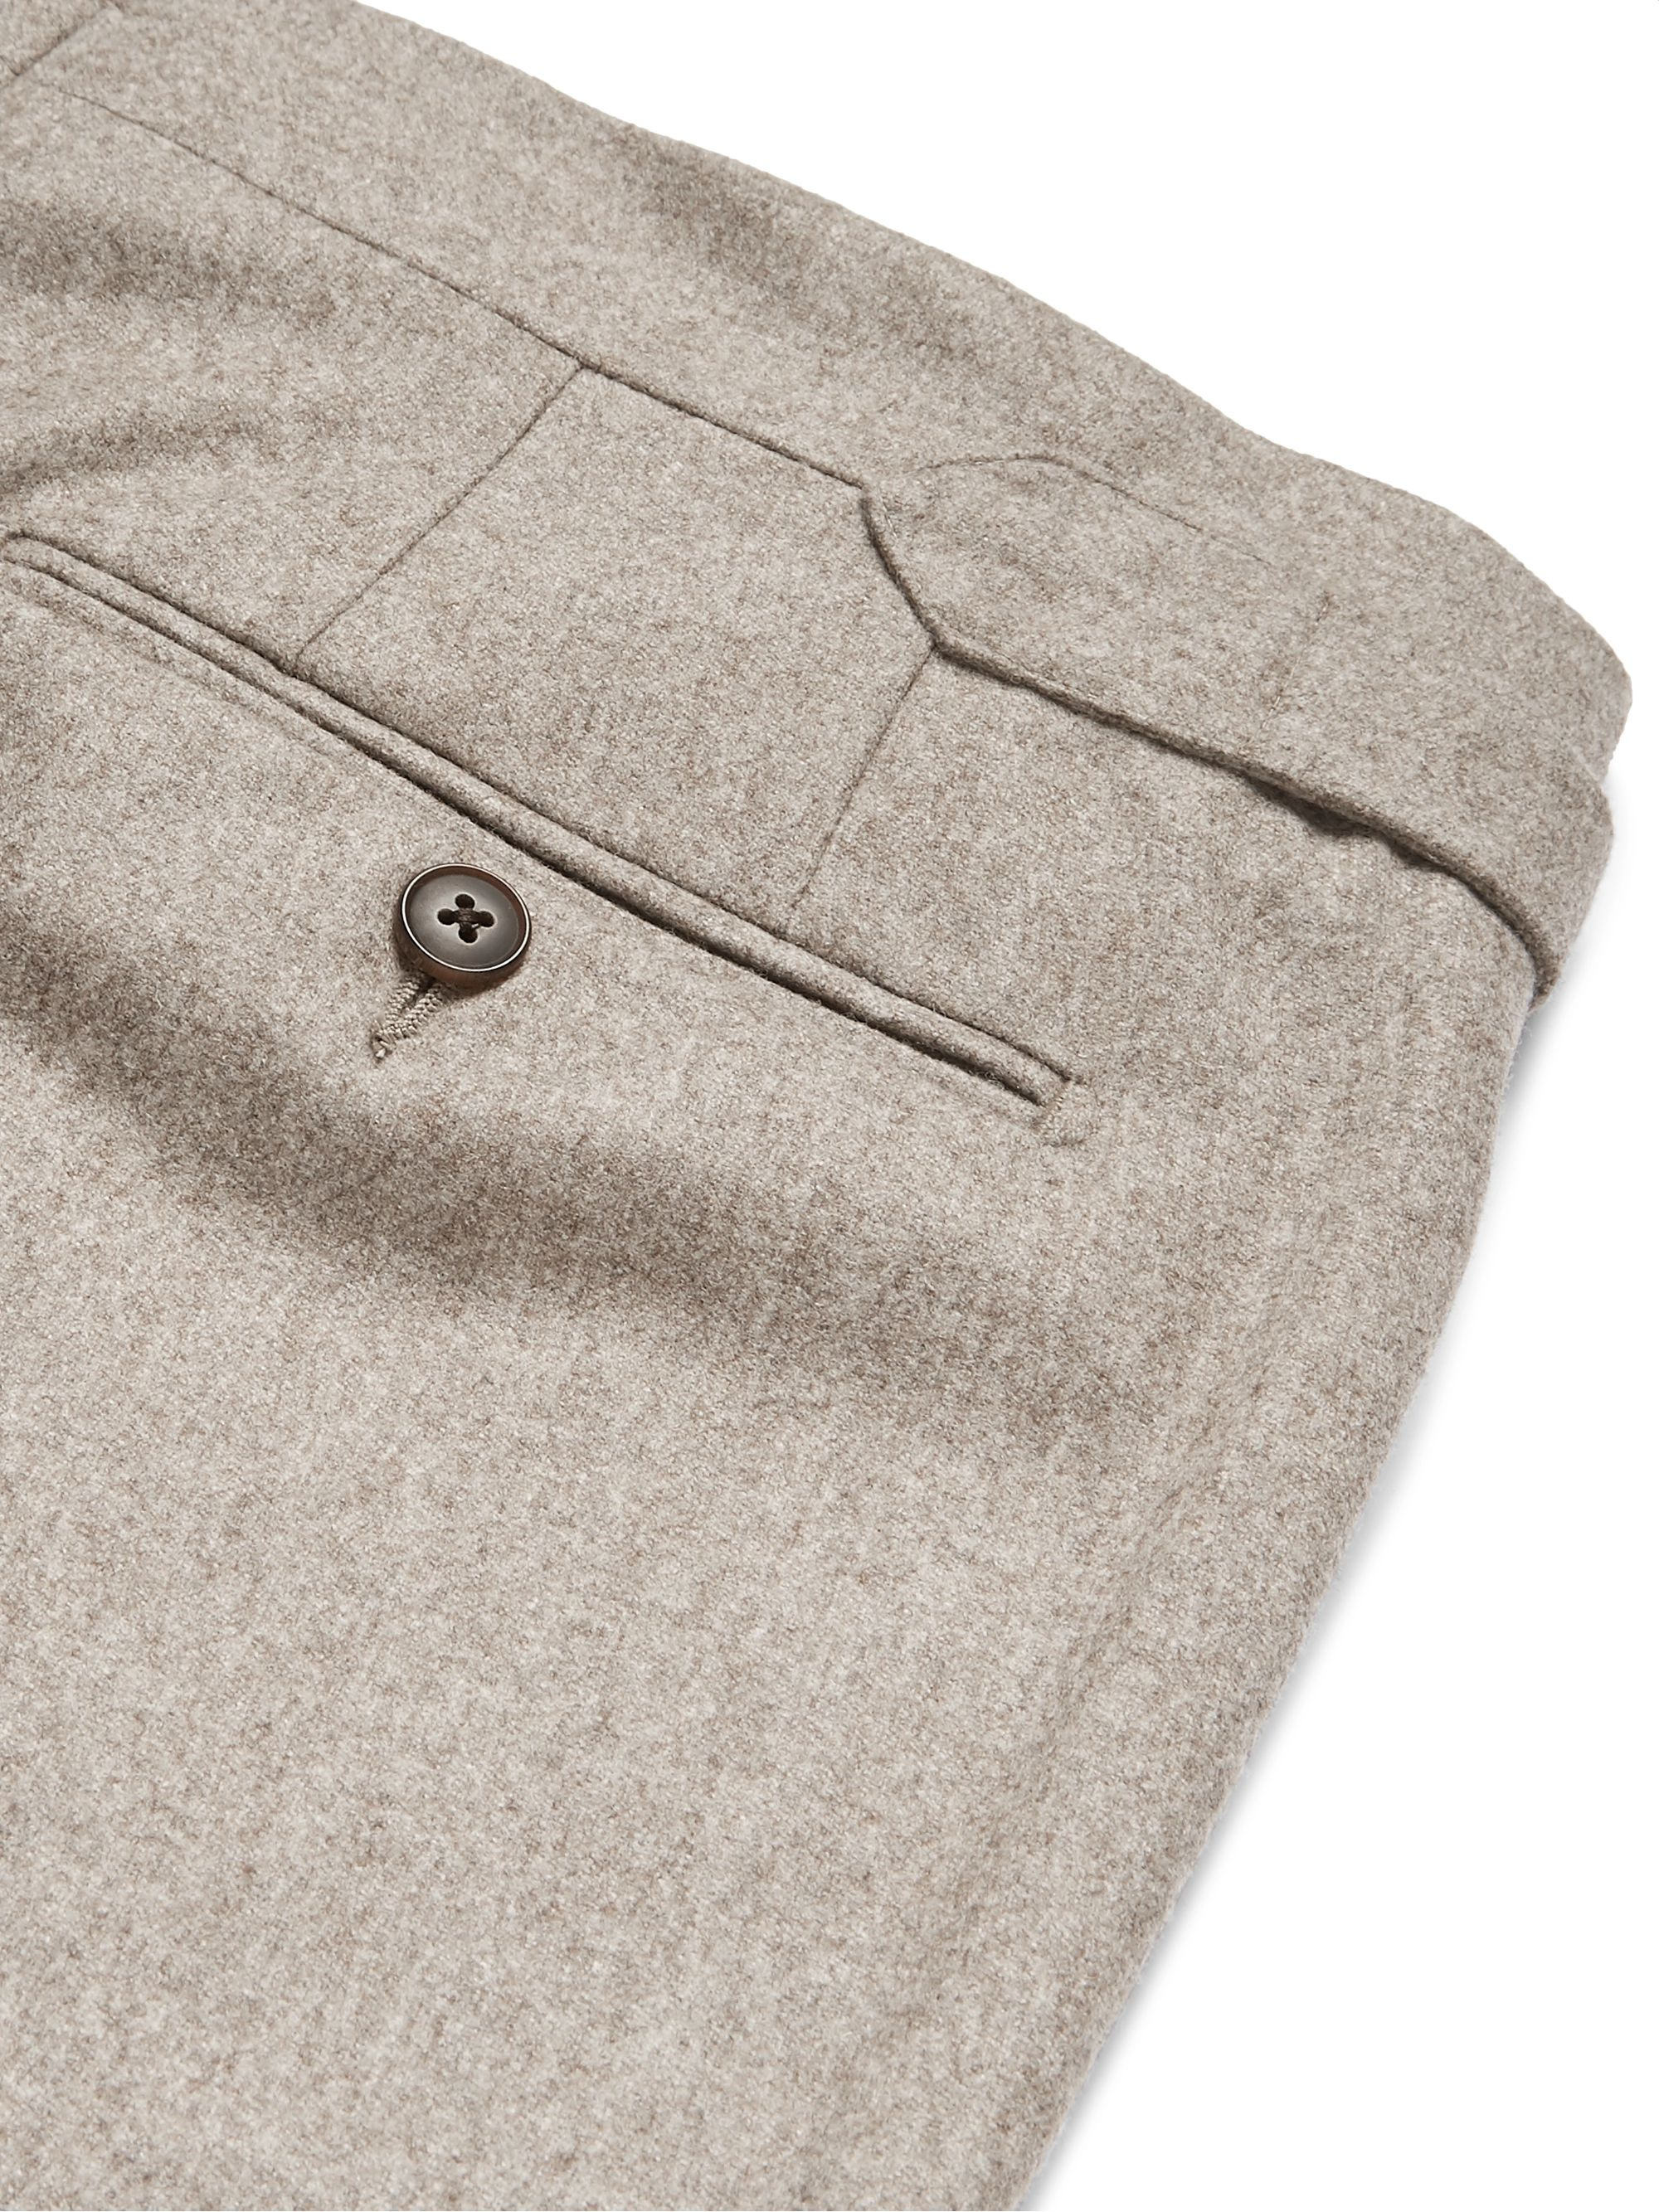 Beige Tapered Pleated Mélange Wool Suit Trousers   Saman Amel